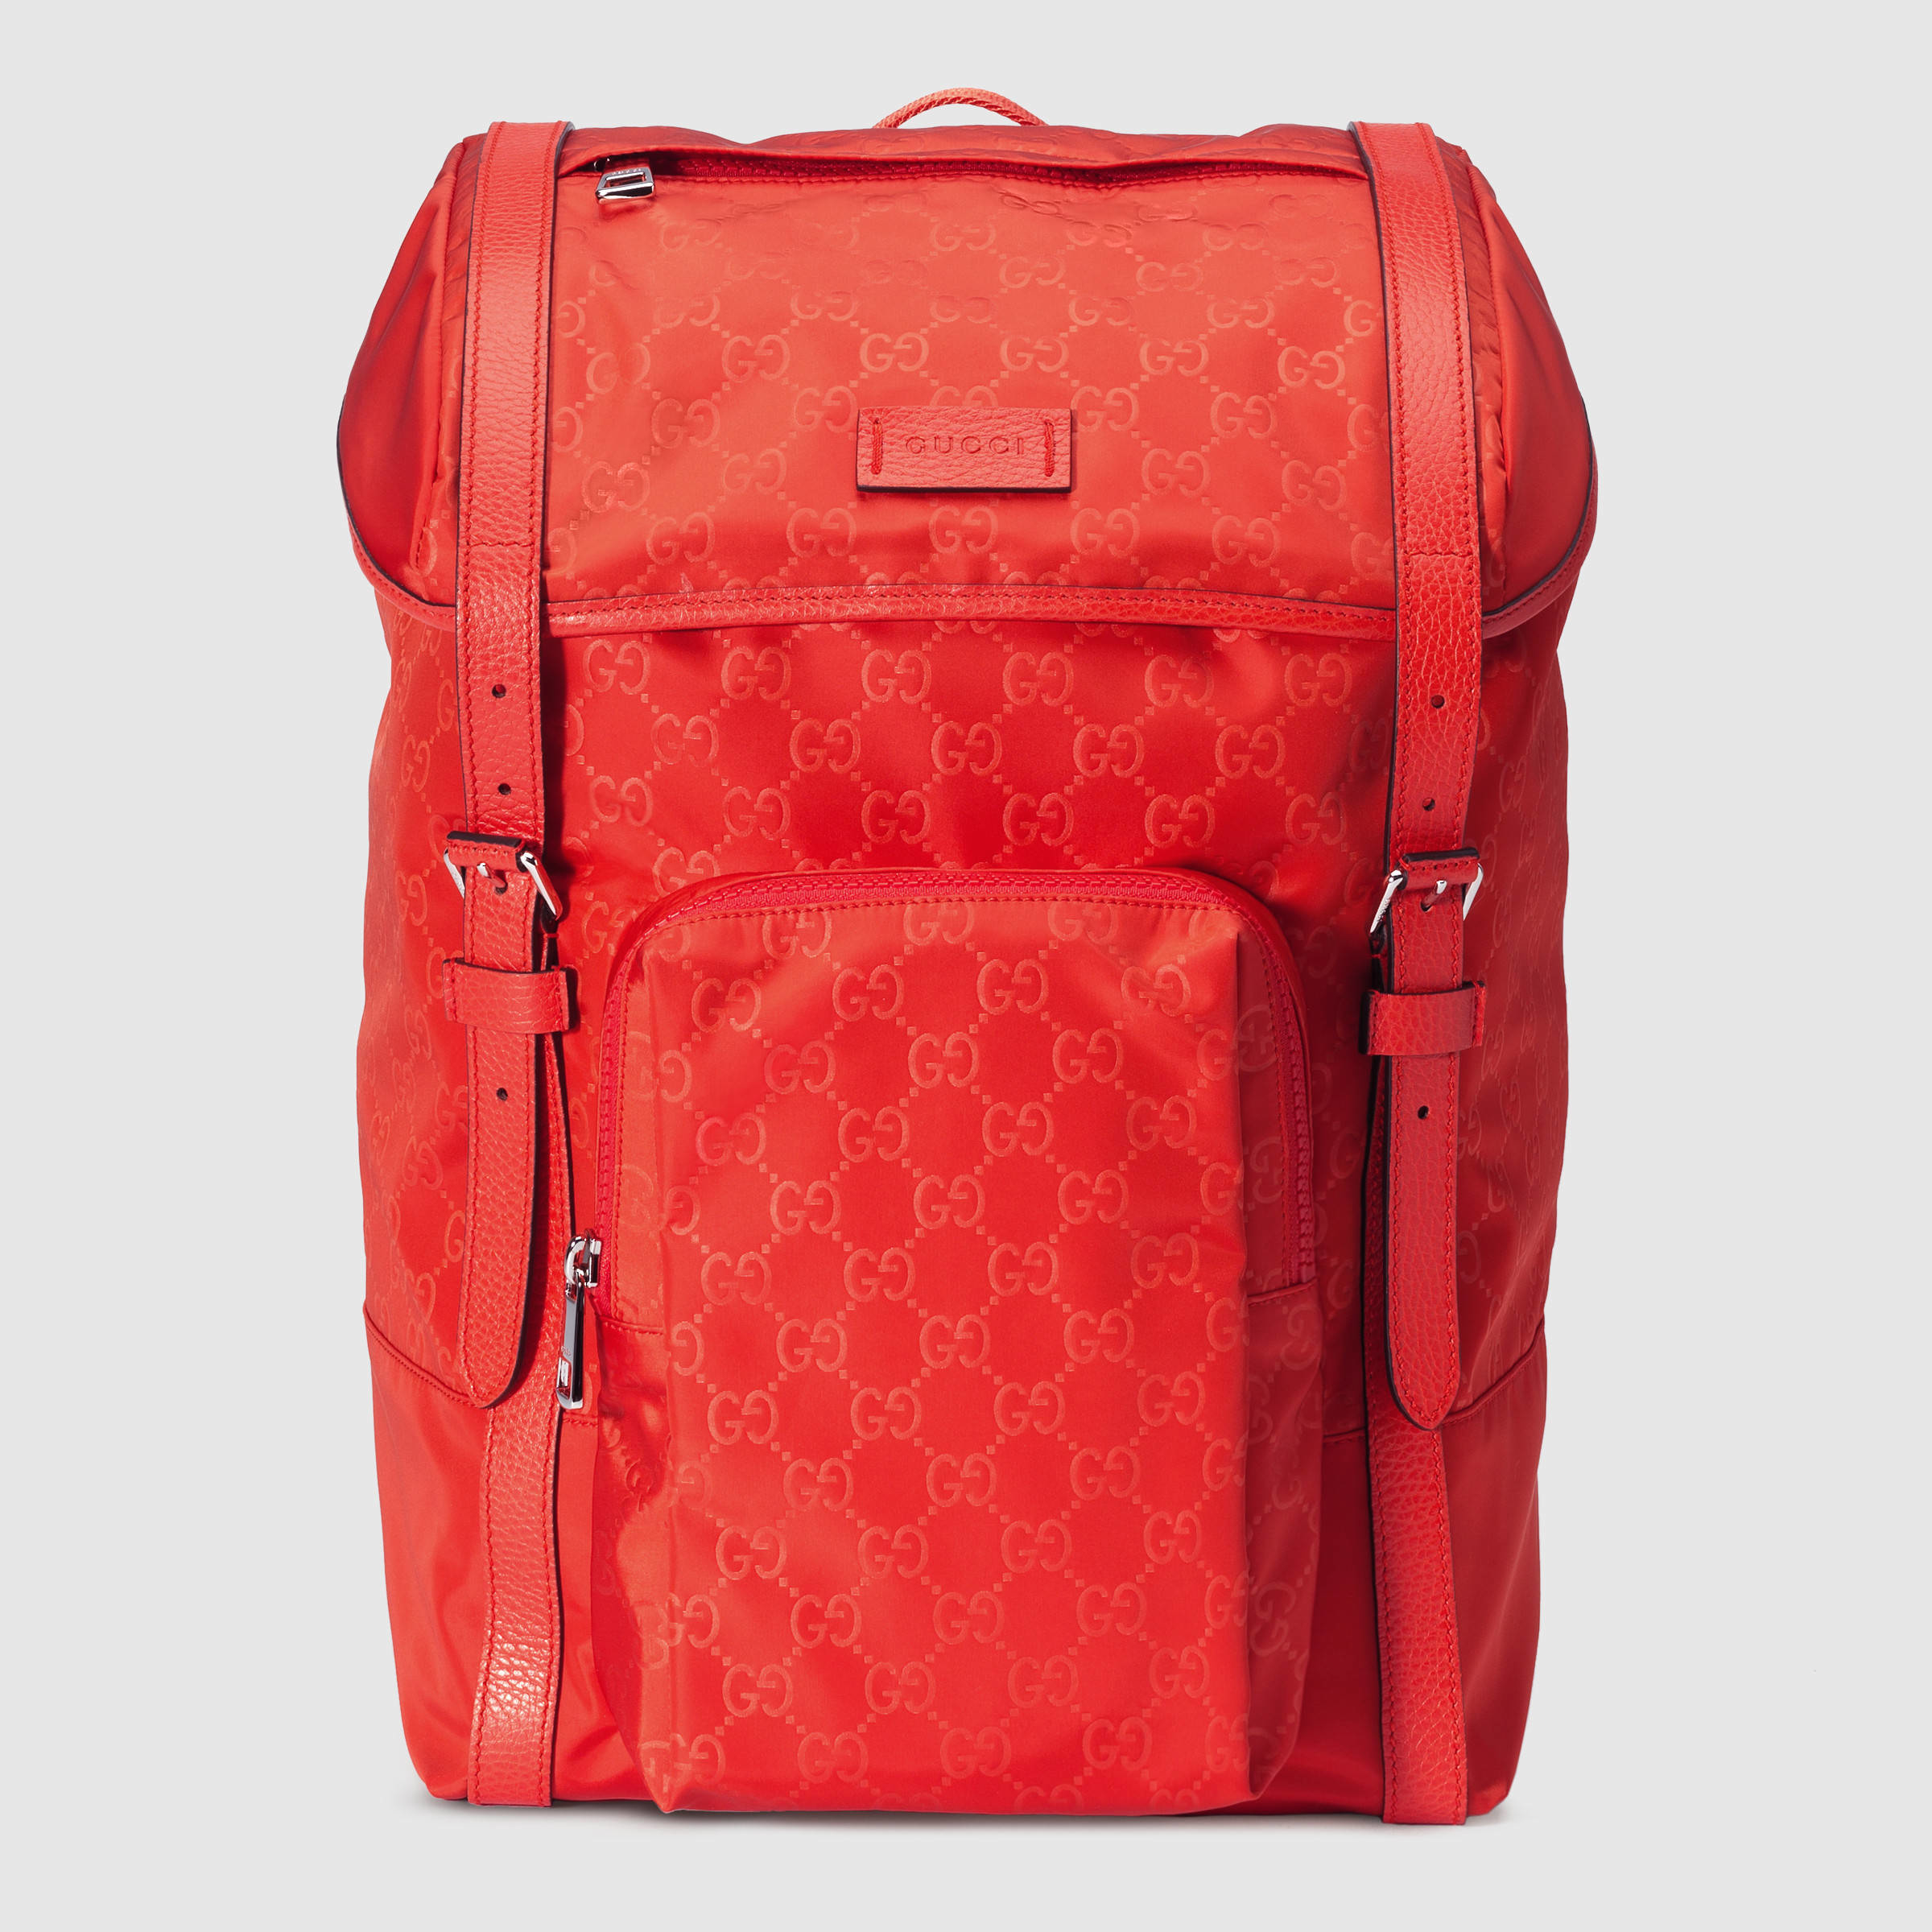 Lyst - Gucci Nylon Ssima Light Backpack in Red for Men 1758e194aa729